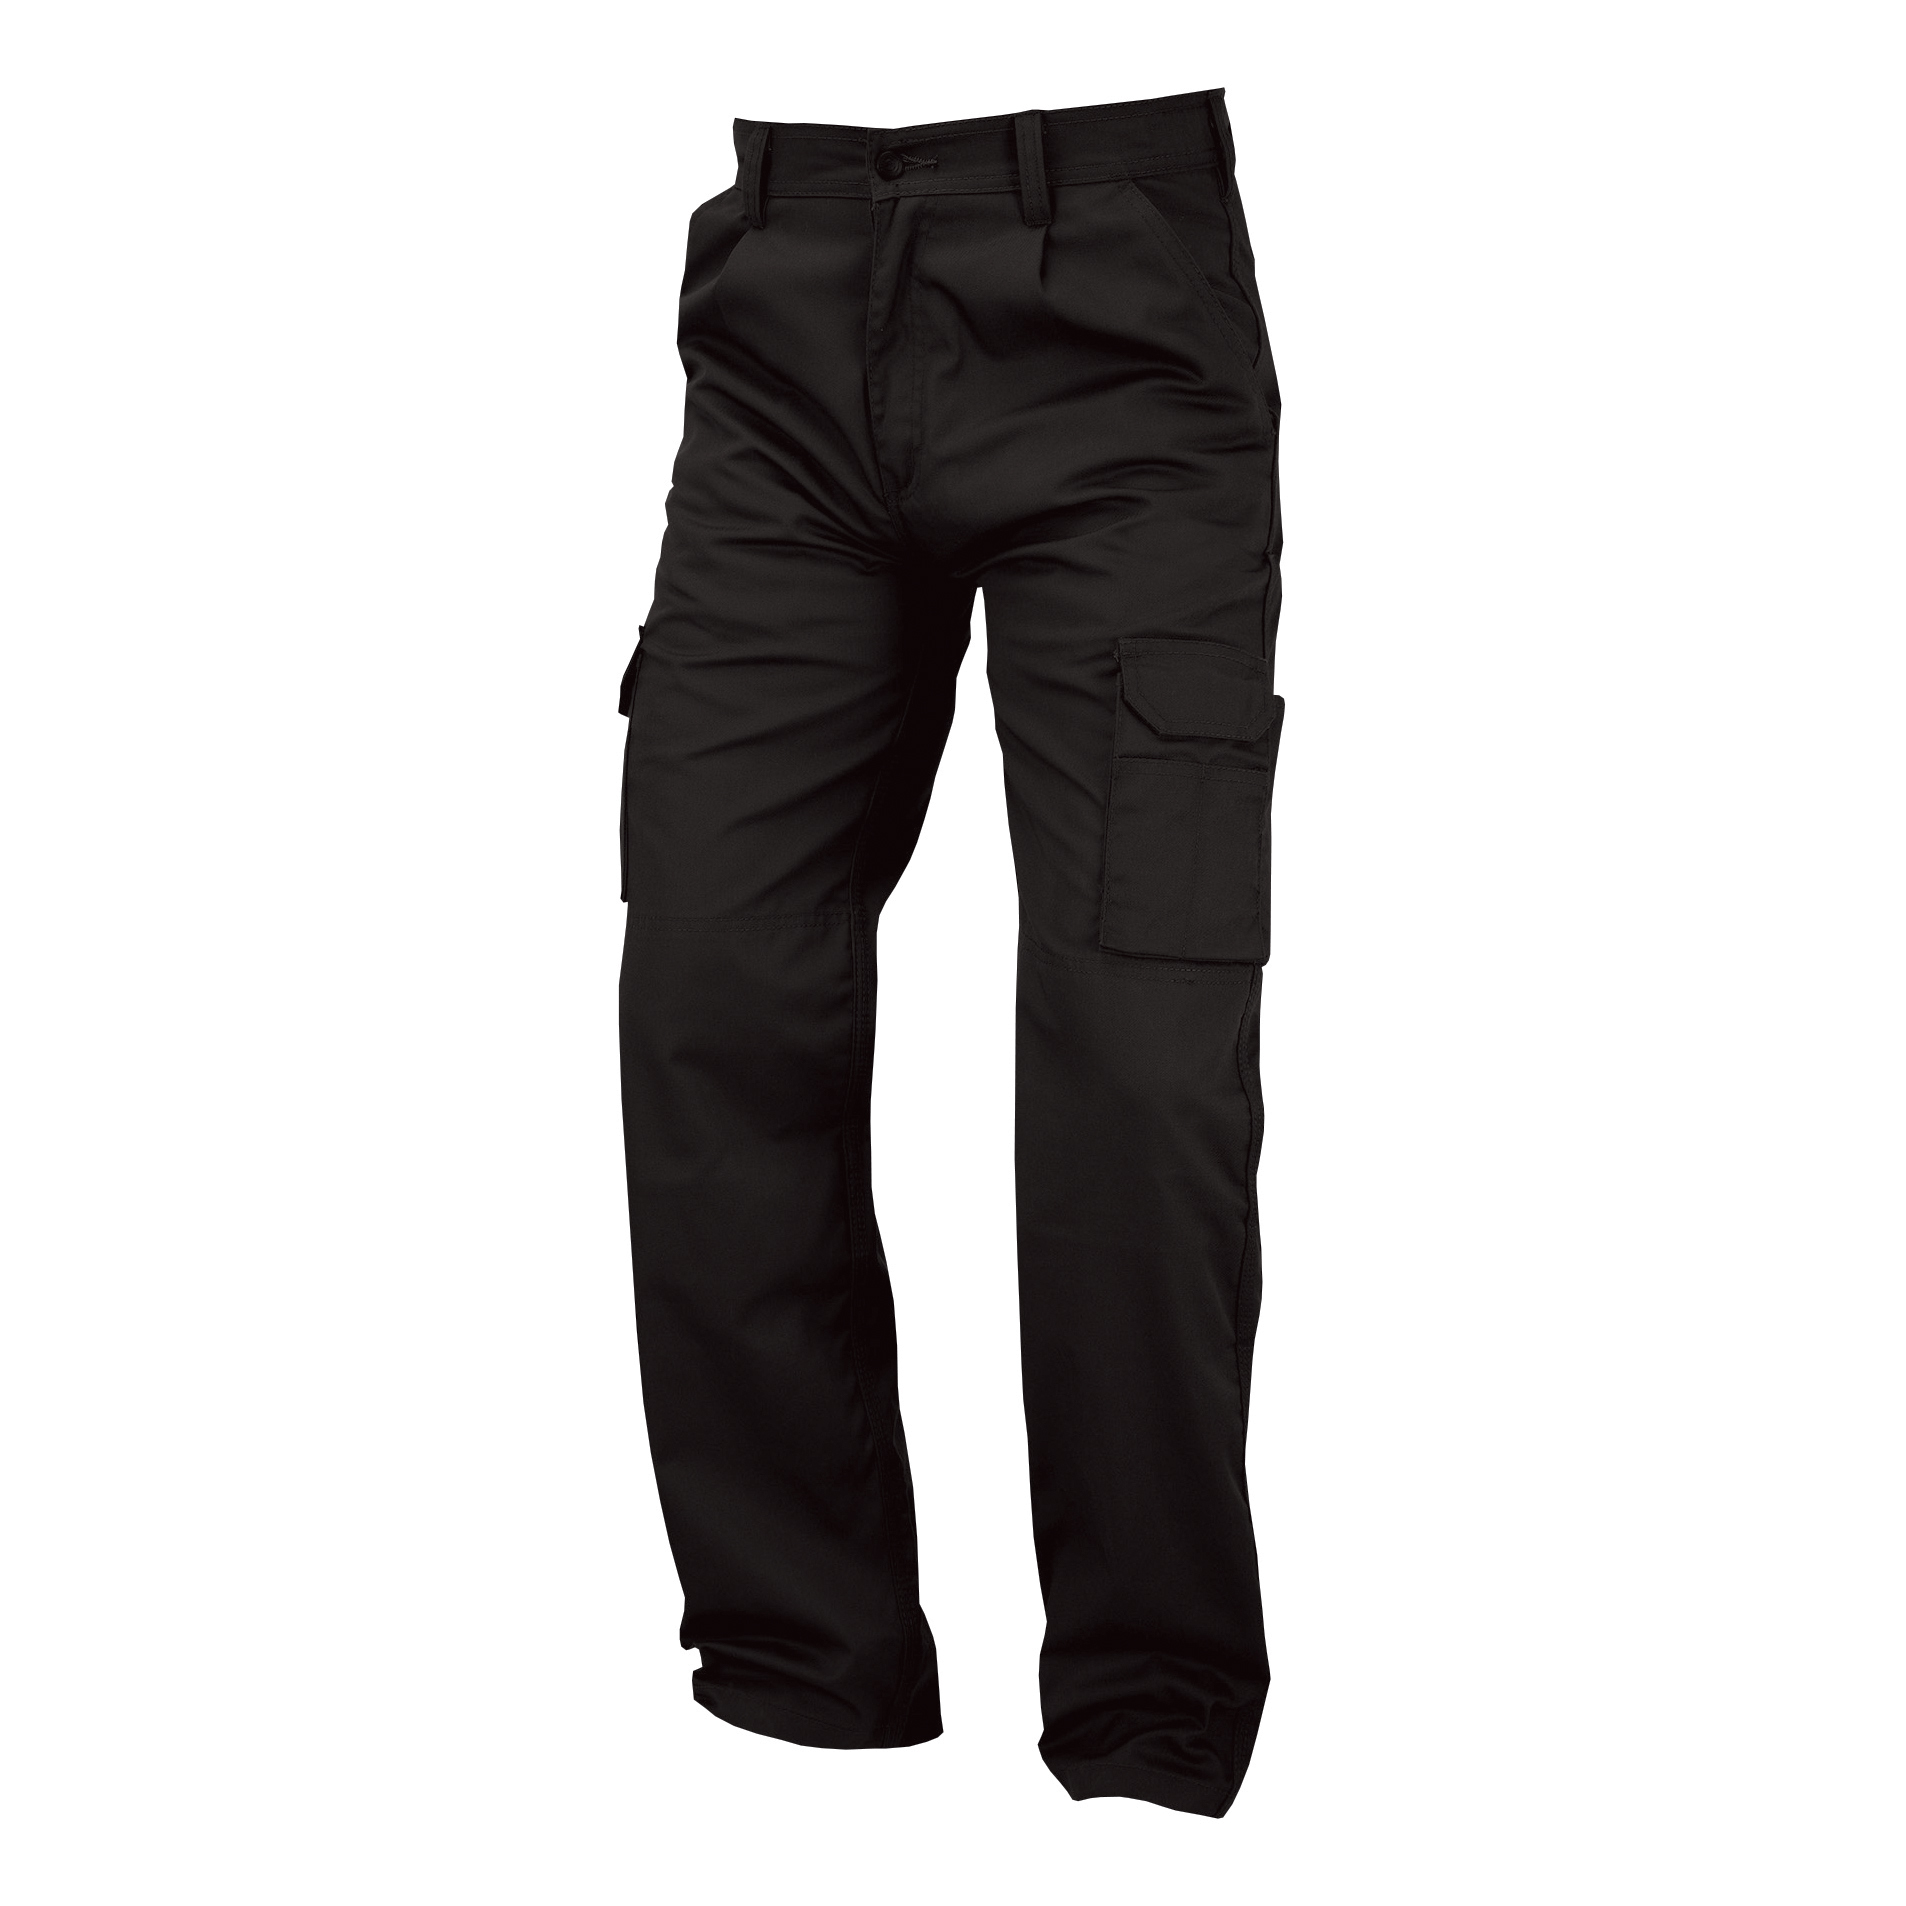 Combat / Cargo Combat Trousers Polycotton with Pockets Size 36in Long Black Ref PCTHWBL36T *1-3 Days Lead Time*